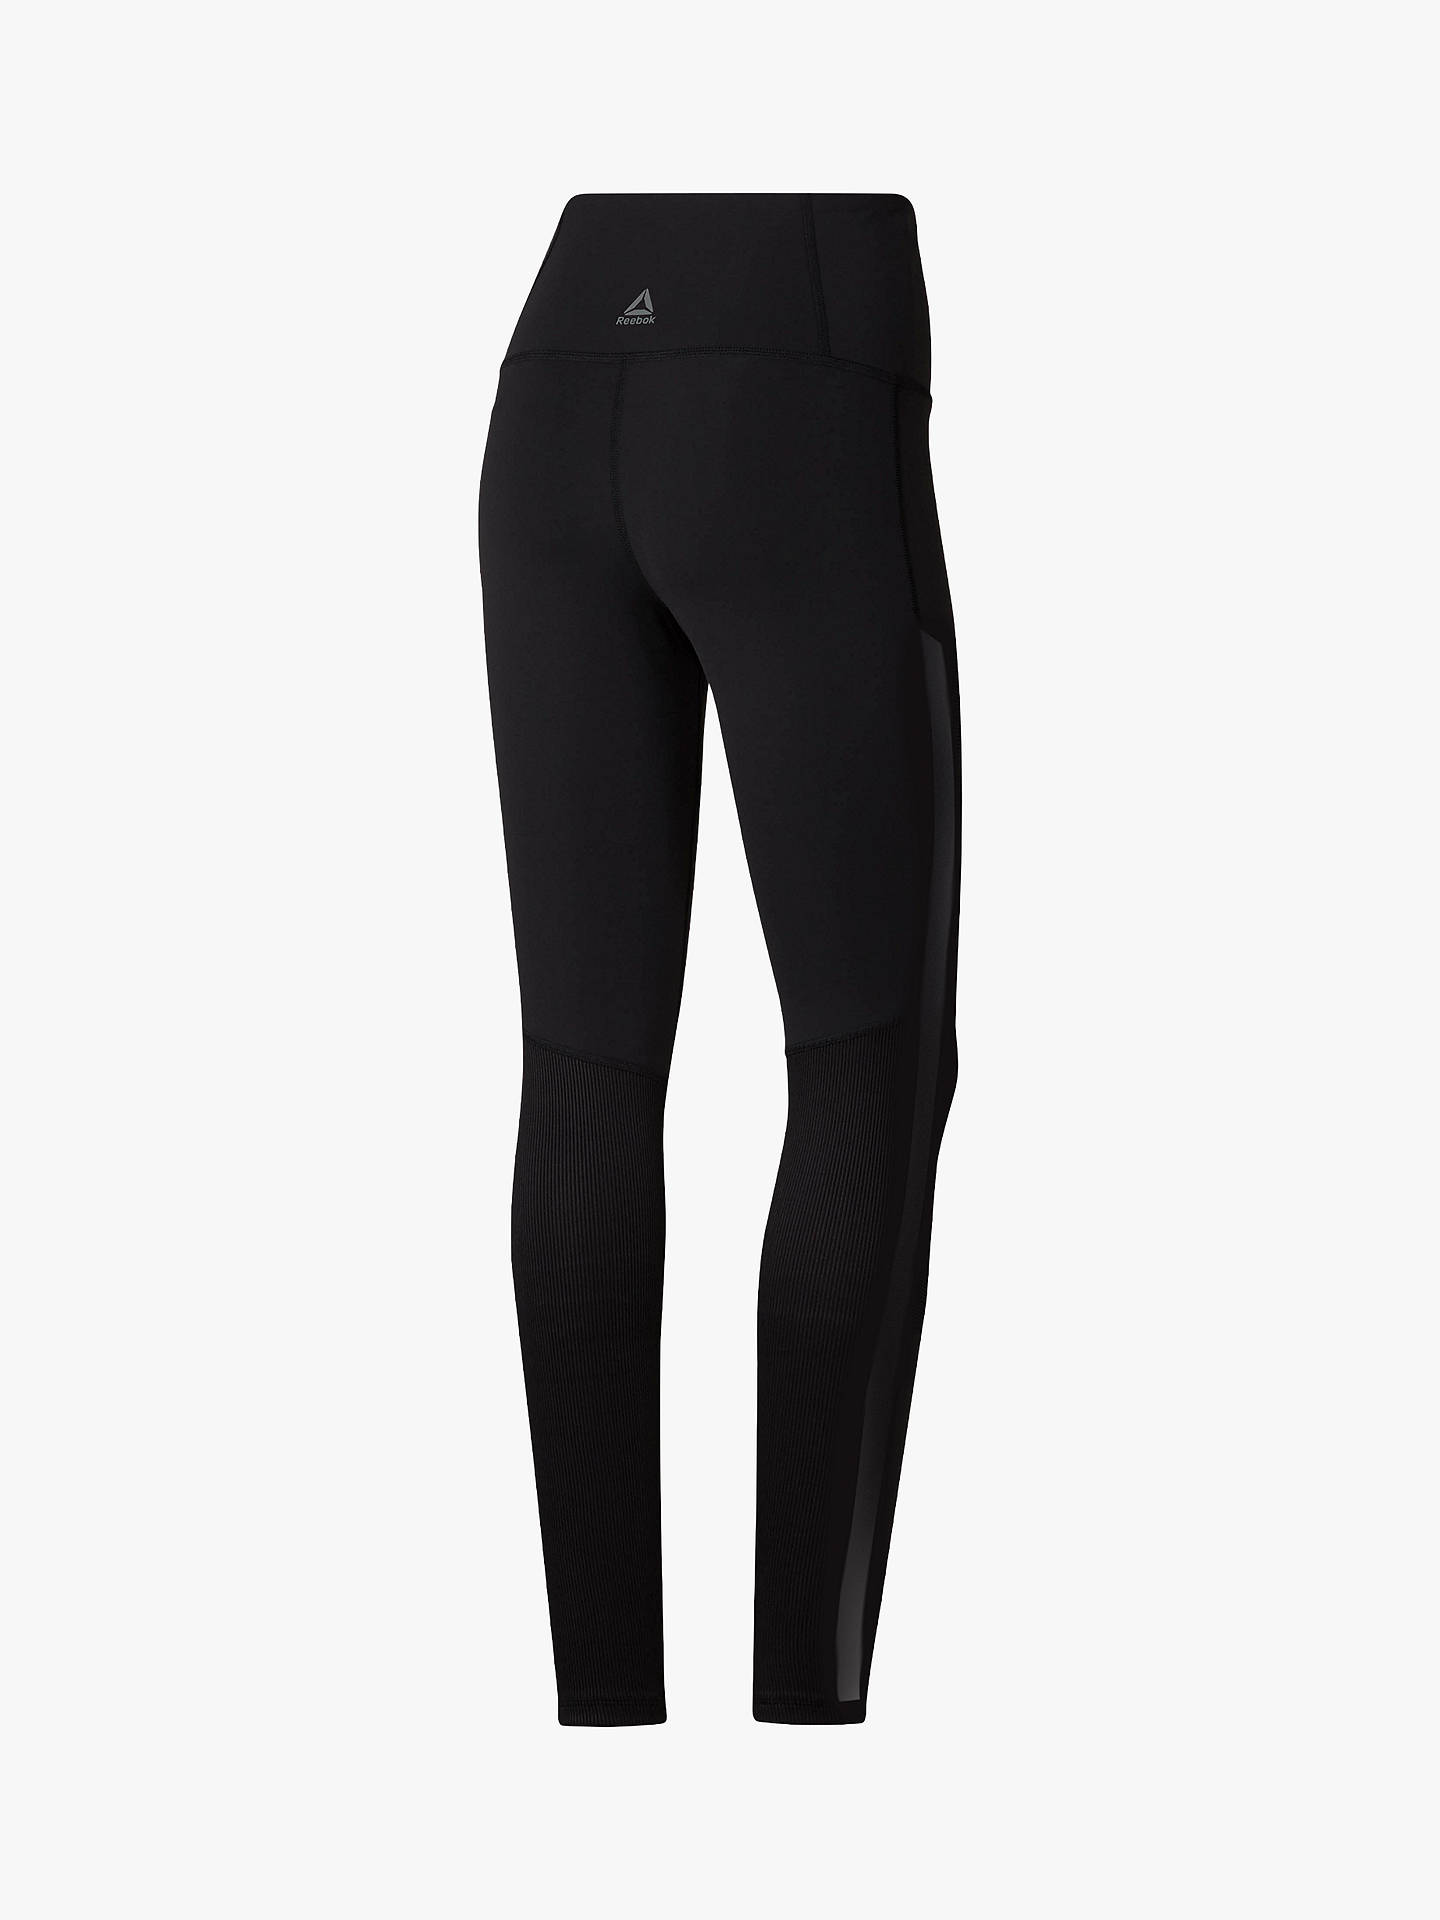 6e98a06a3b ... Buy Reebok Cardio Lux High-Rise Training Tights